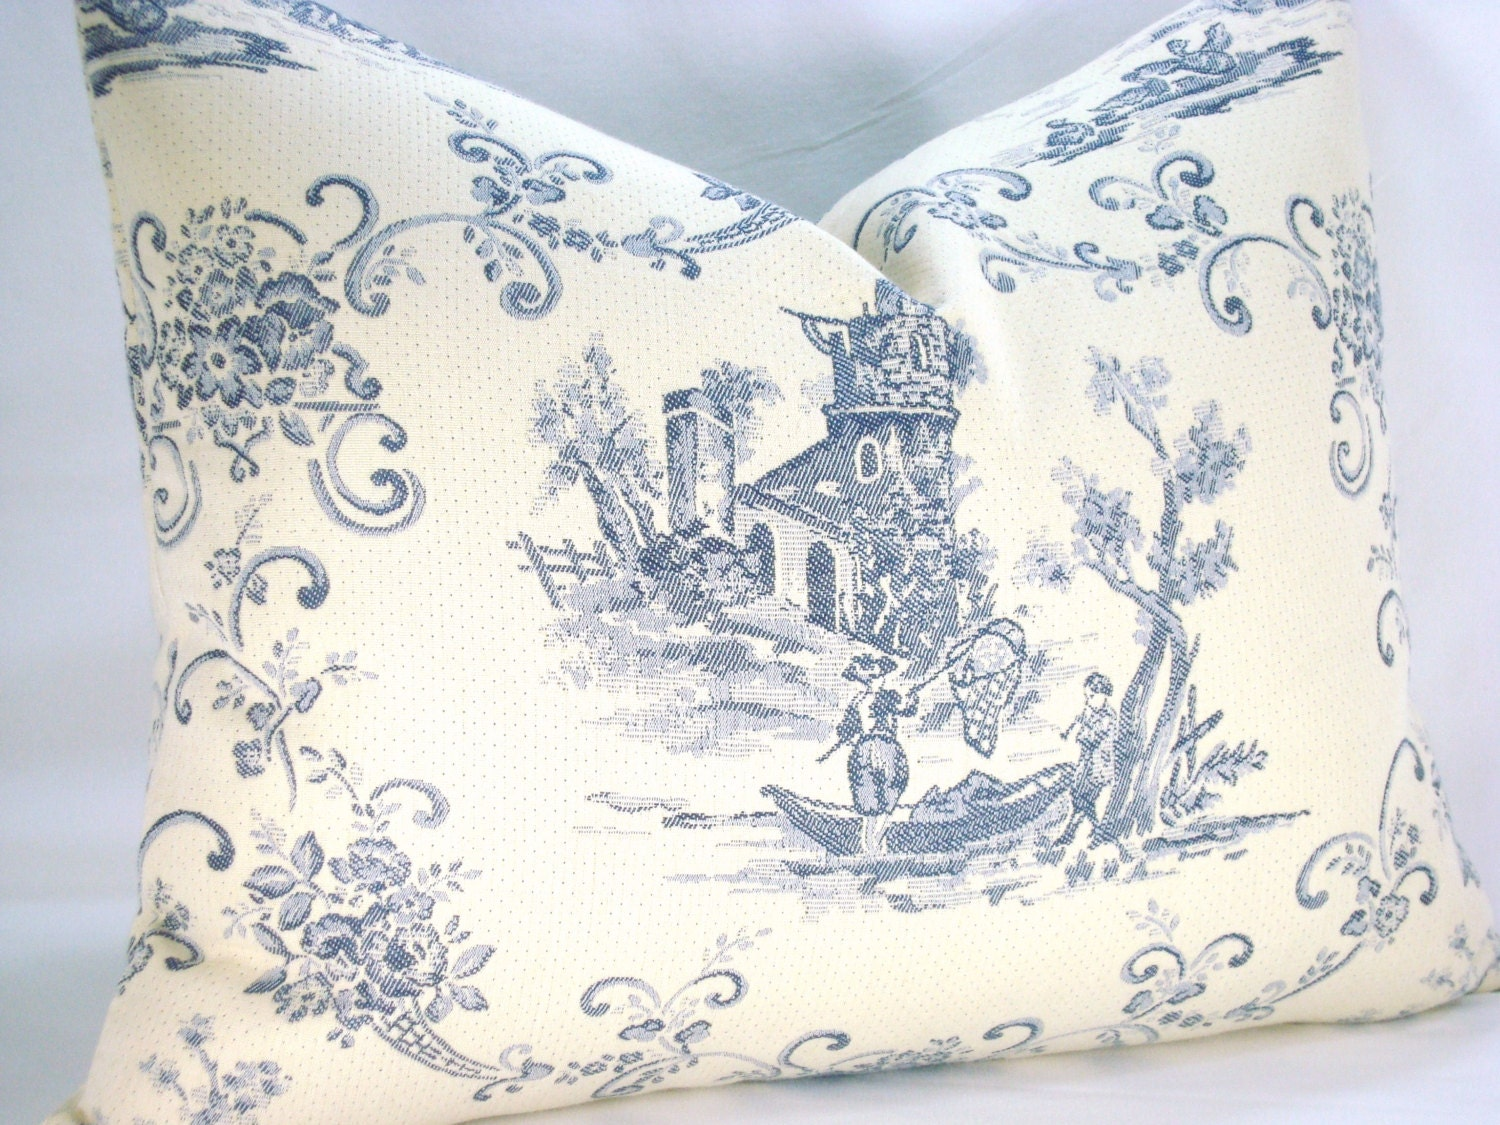 decorative pillow toile de jouy matelasse pillow accent lumbar. Black Bedroom Furniture Sets. Home Design Ideas